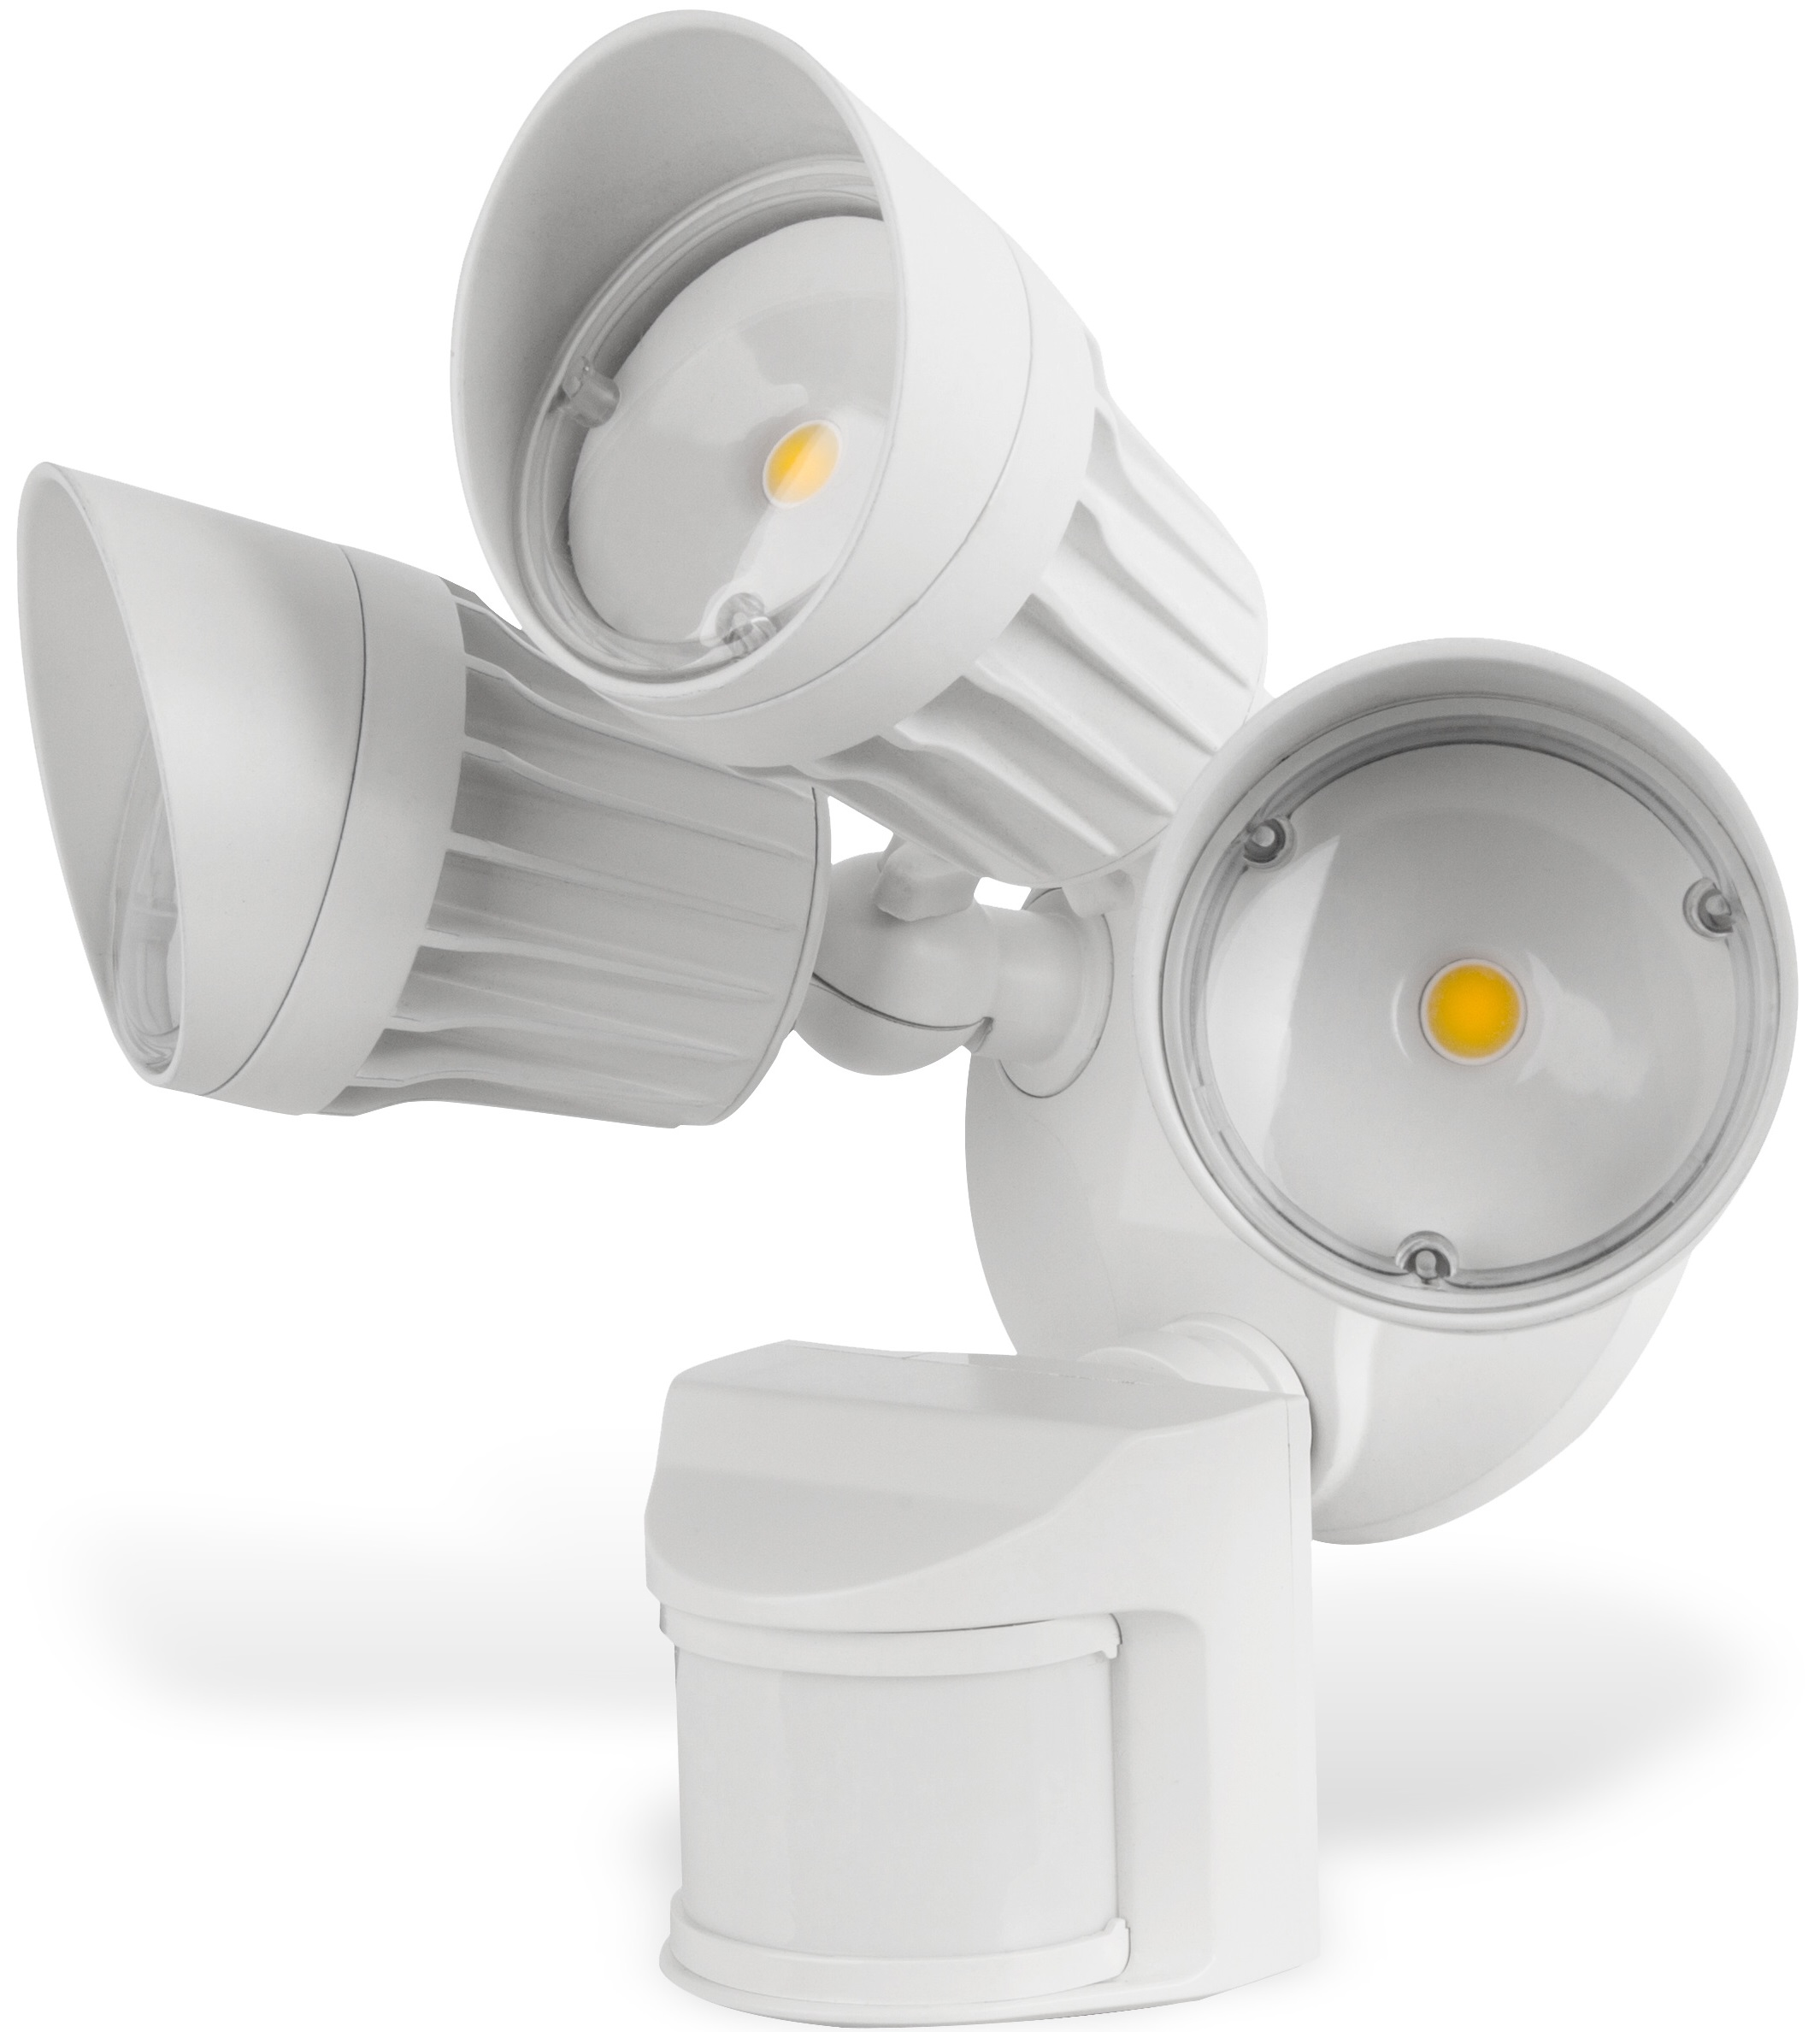 LEDPAX LED Security Light, 30W, Motion Activated, Integrated LED, 2700 Lumens, Flood, 5000K, Waterproof IP65, White